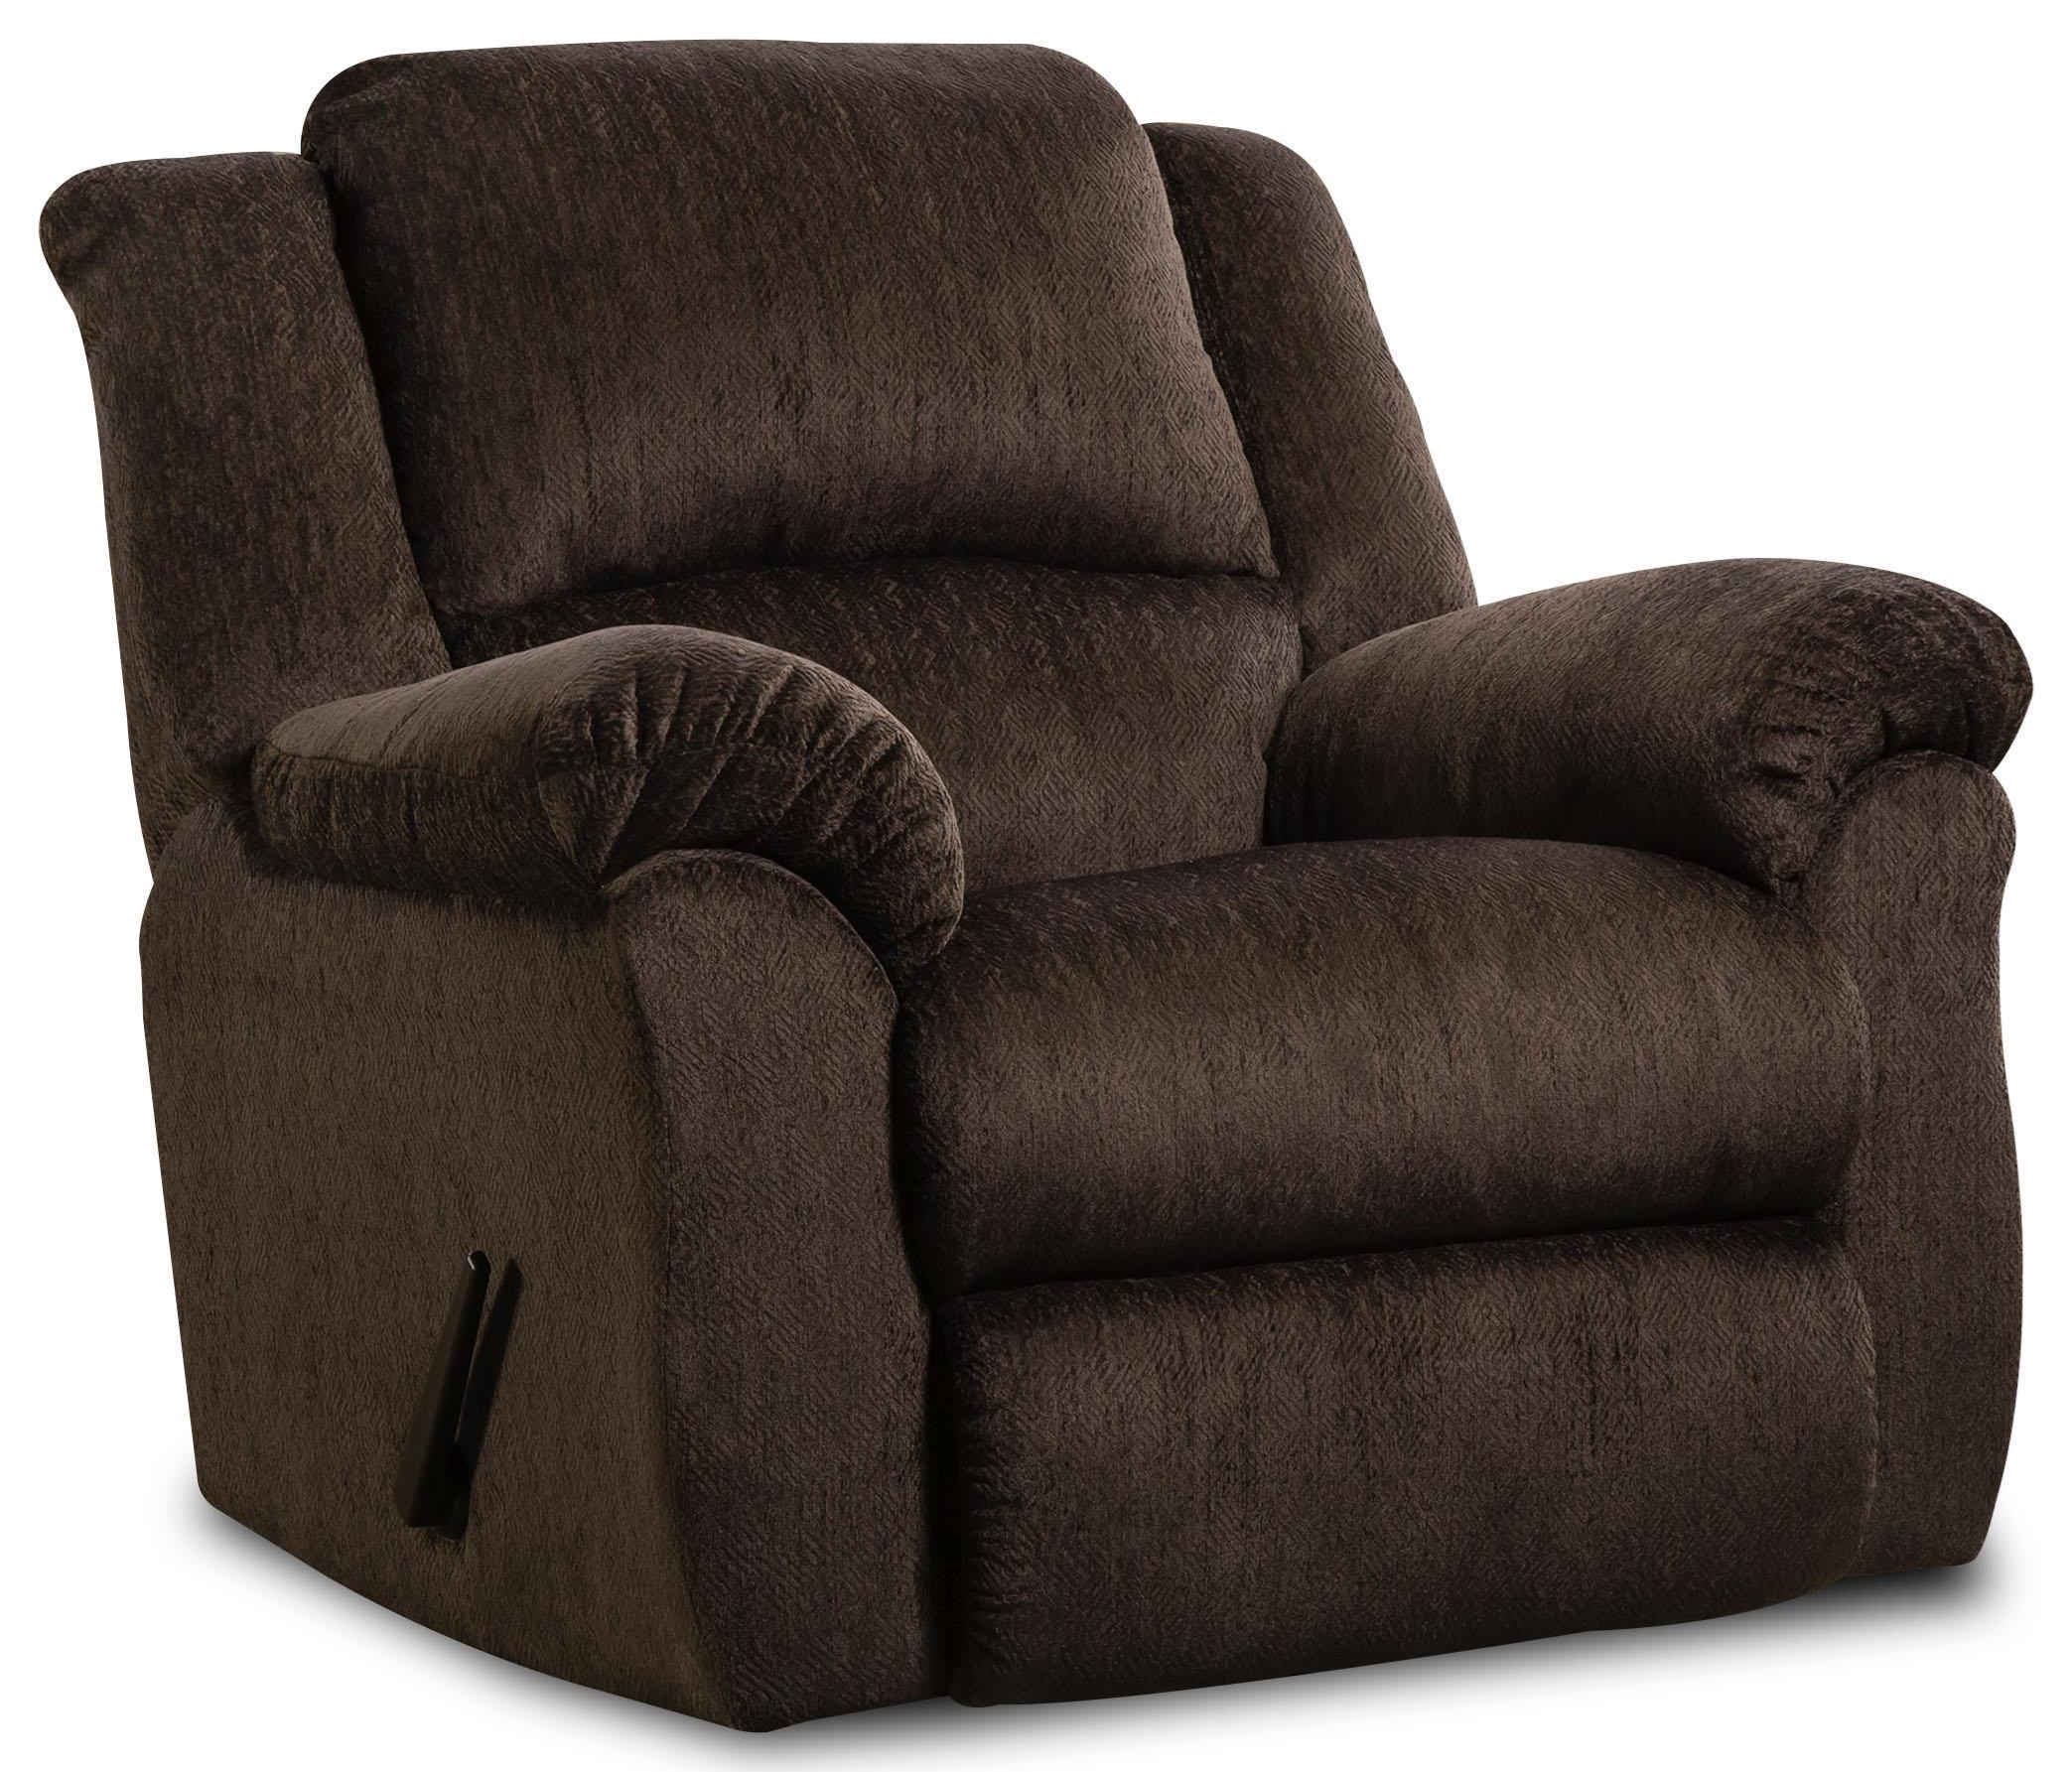 173 Rocker Recliner by HomeStretch at Johnny Janosik